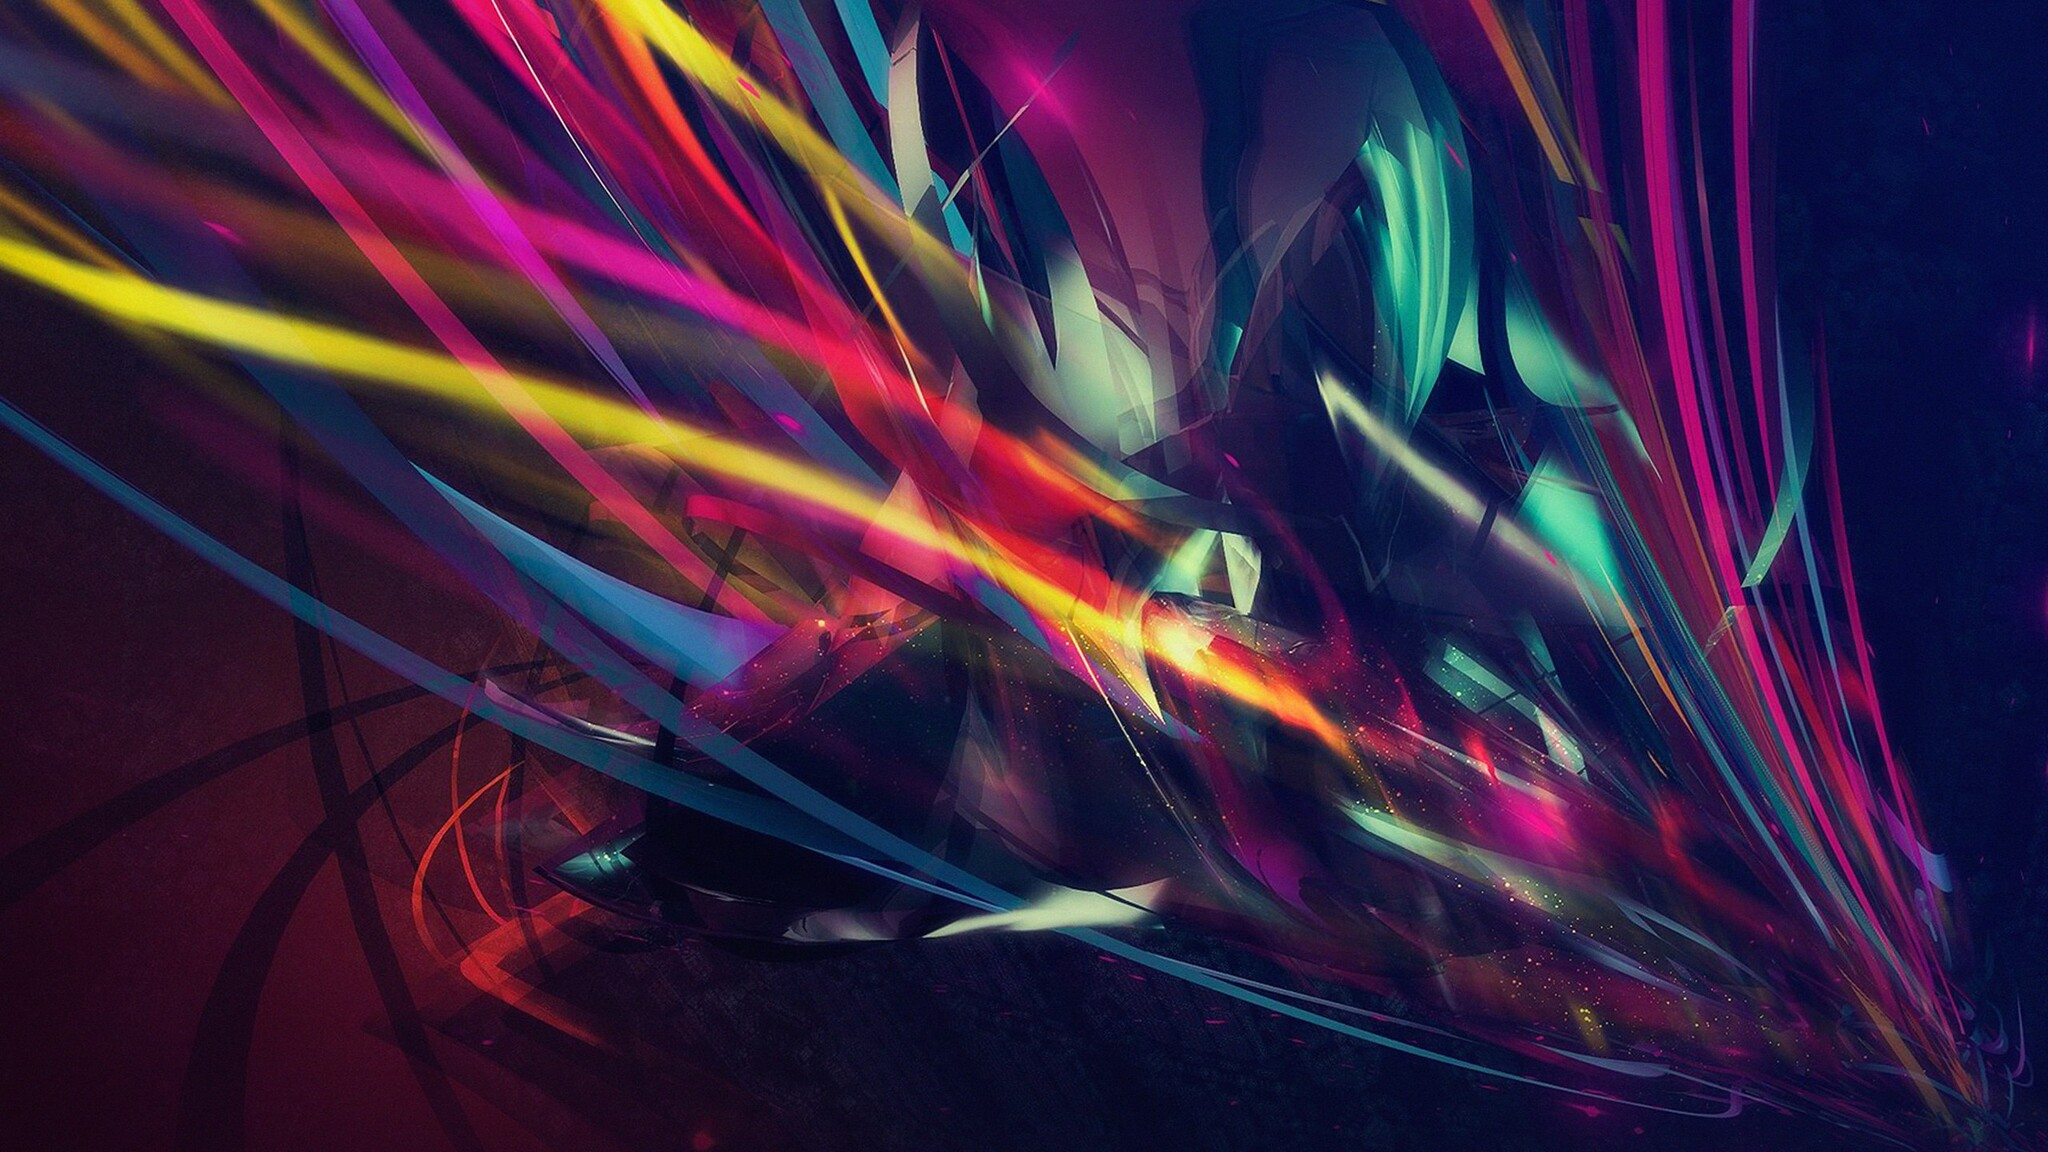 2048x1152 Abstract Colorful Background Hd 2048x1152 ...